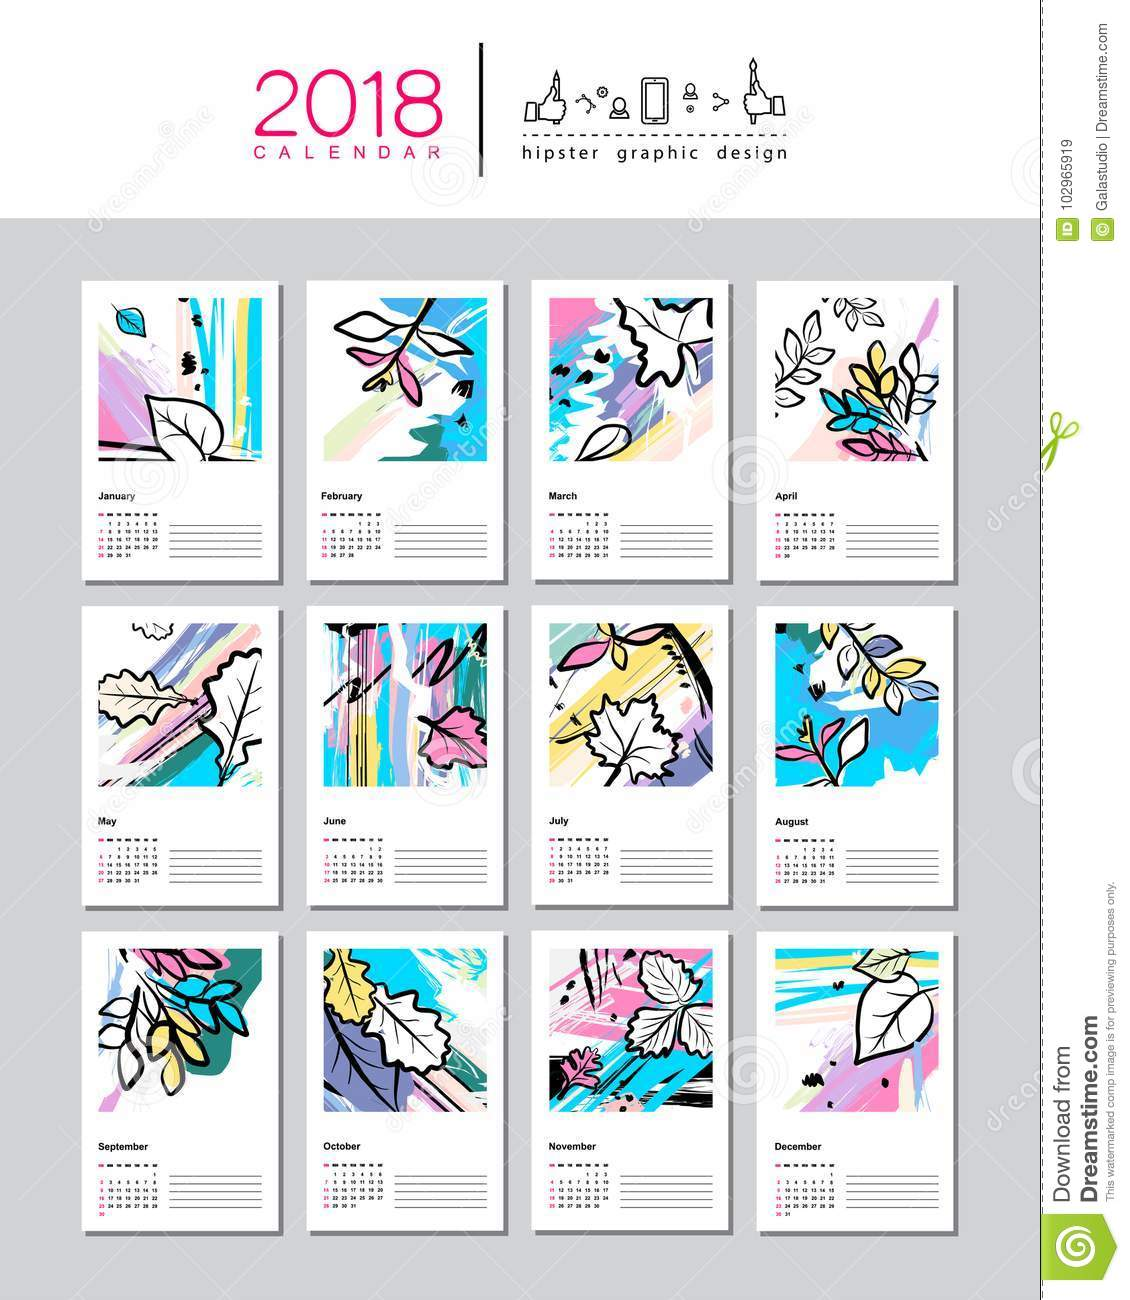 Creative Calendar Template from thumbs.dreamstime.com